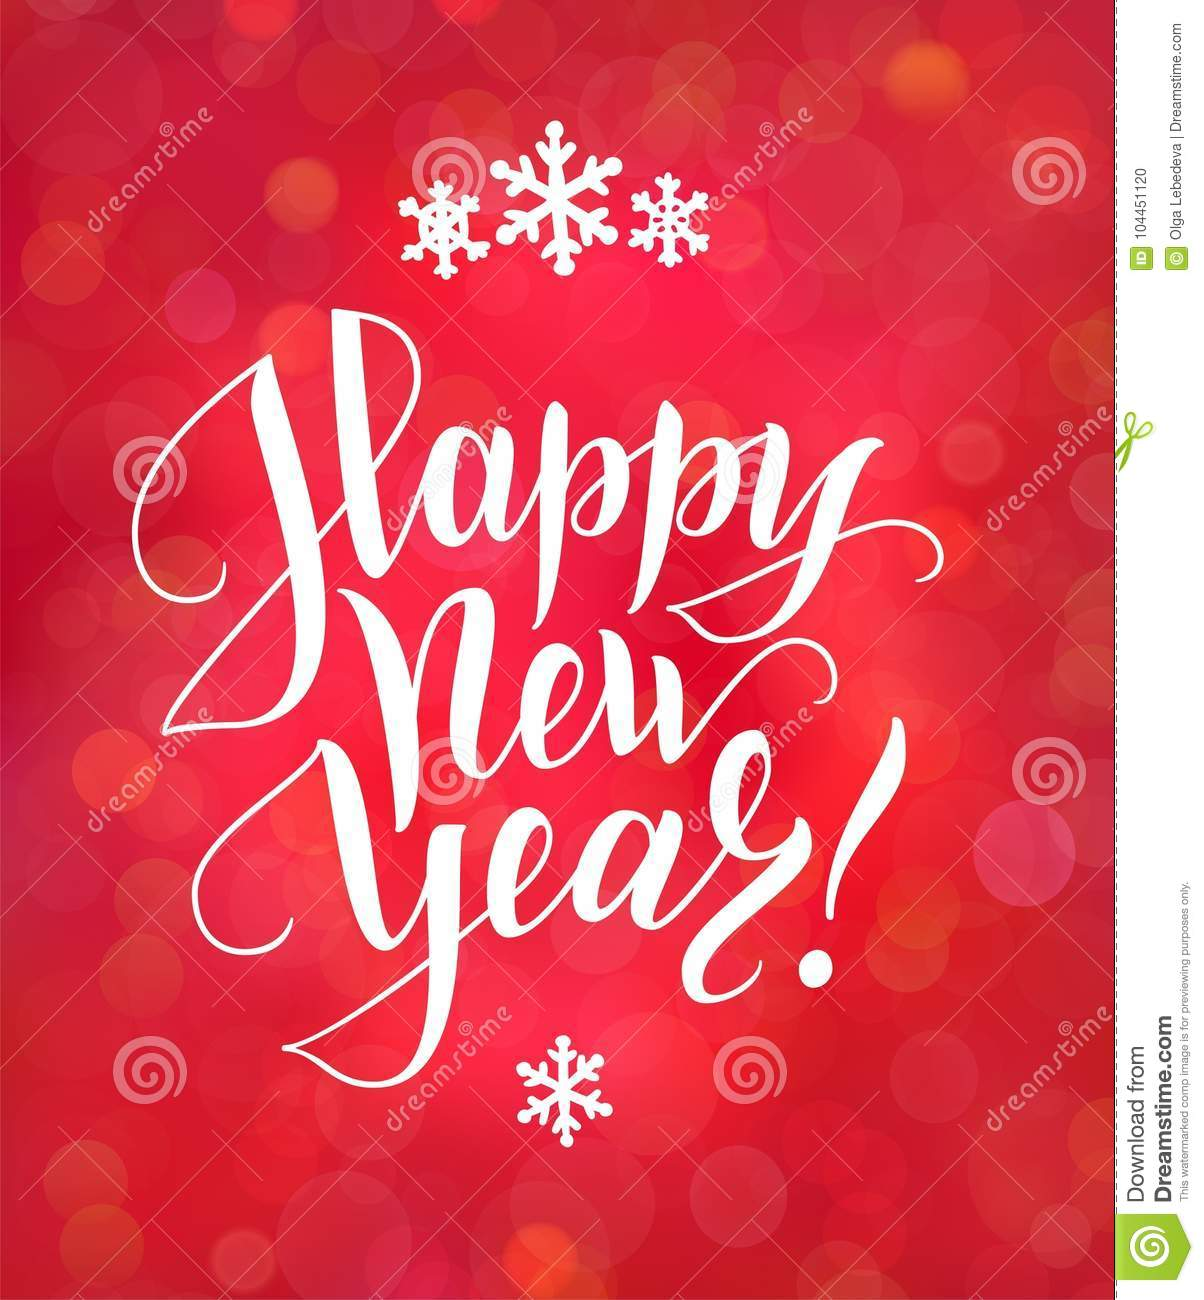 Happy New Year Text Holiday Greetings Quote Great For Christmas